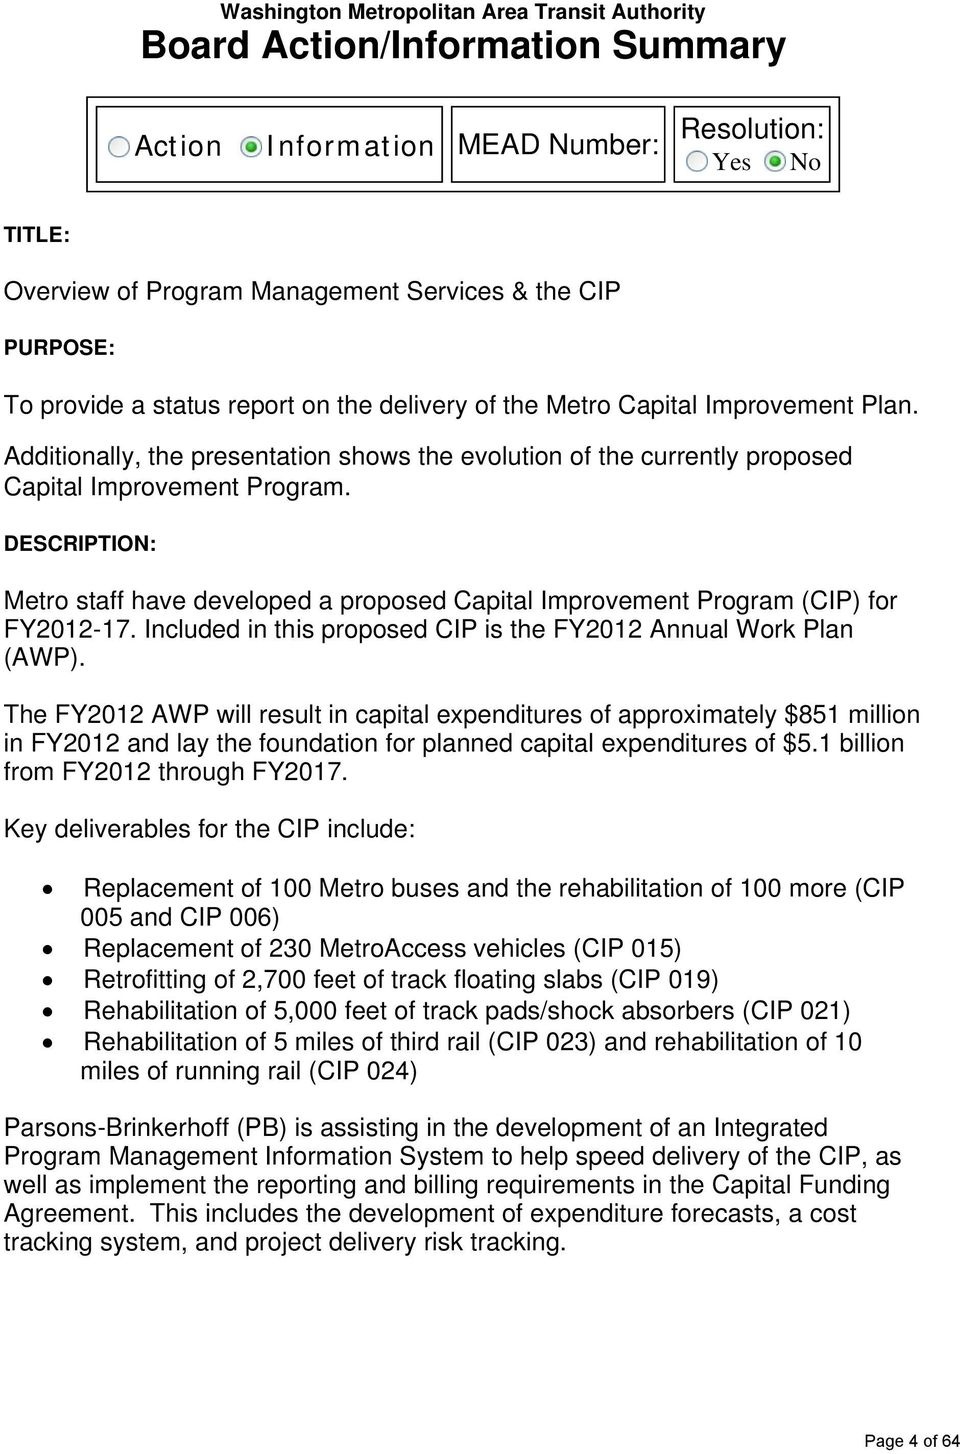 DESCRIPTION: Metro staff have developed a proposed Capital Improvement Program (CIP) for FY2012-17. Included in this proposed CIP is the FY2012 Annual Work Plan (AWP).